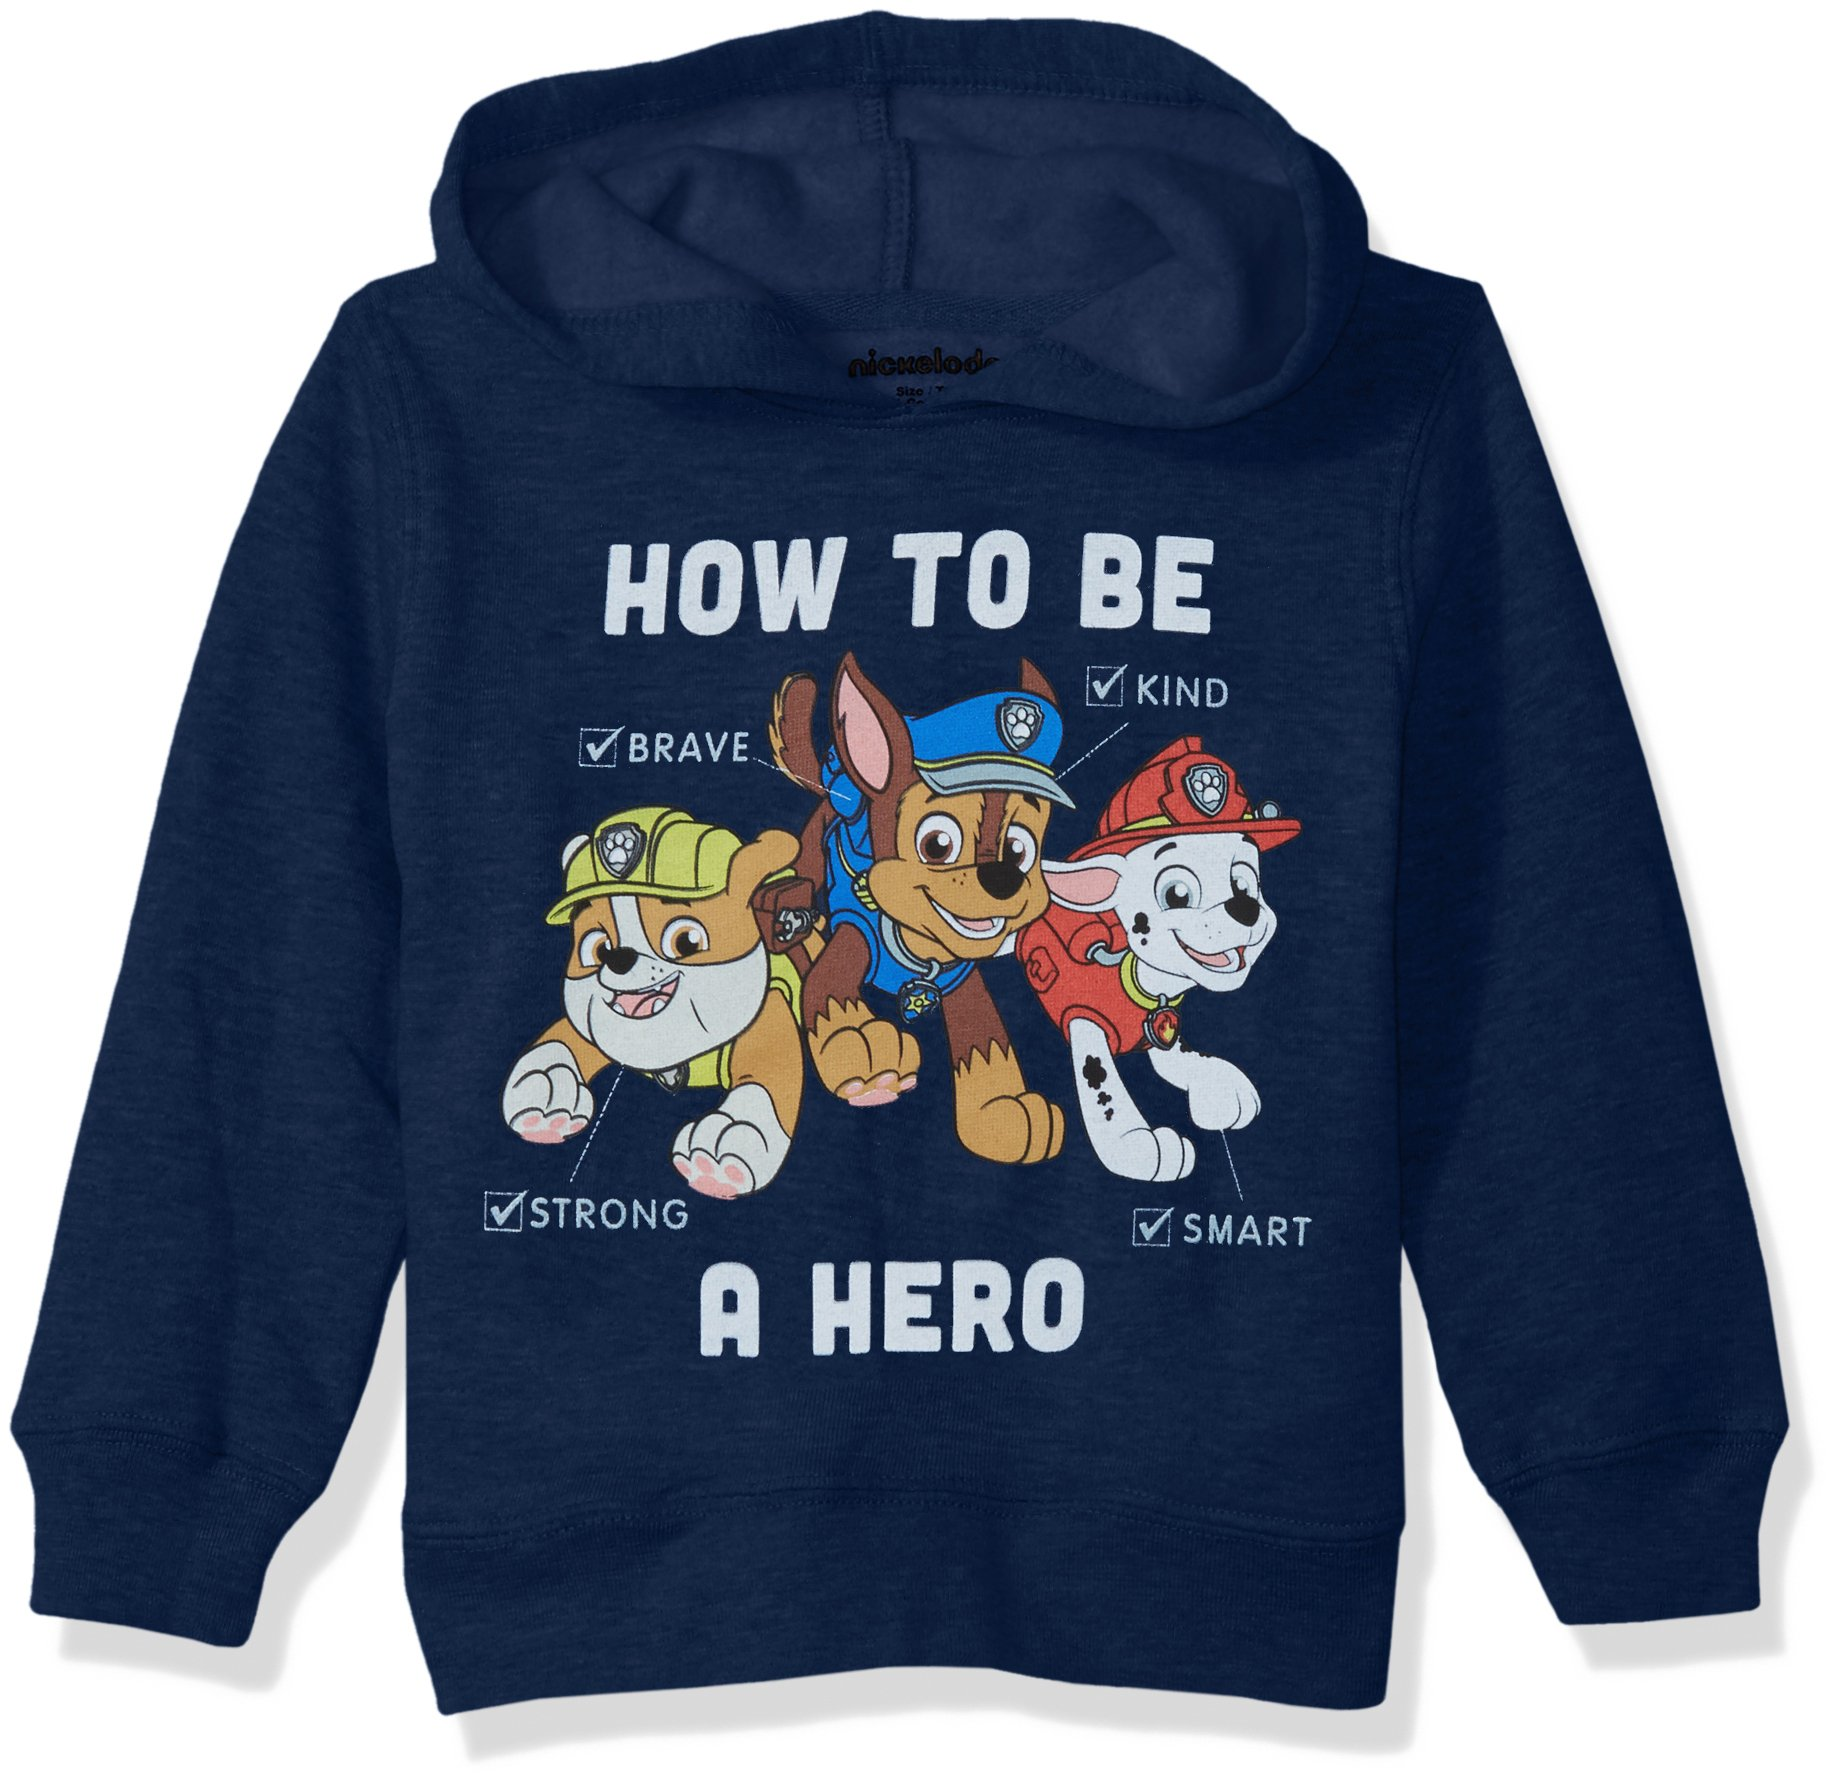 Nickelodeon Boys' Toddler Paw Patrol Pullover Fleece Hero, 3T